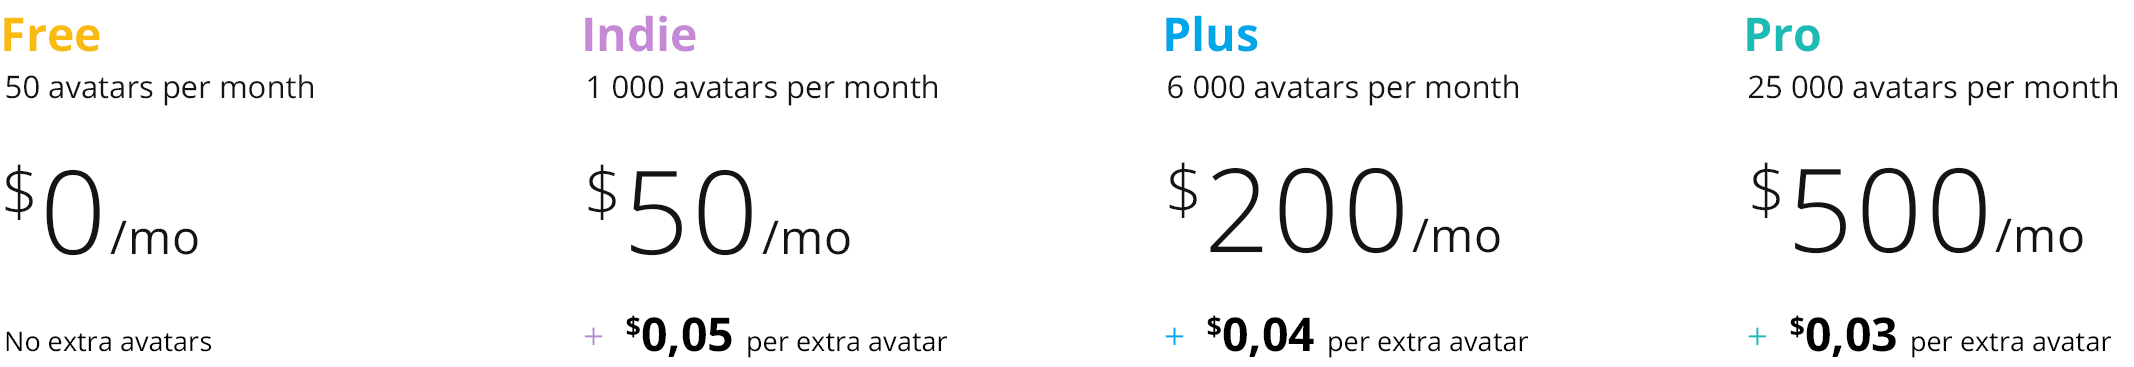 avatar sdk pricing plans